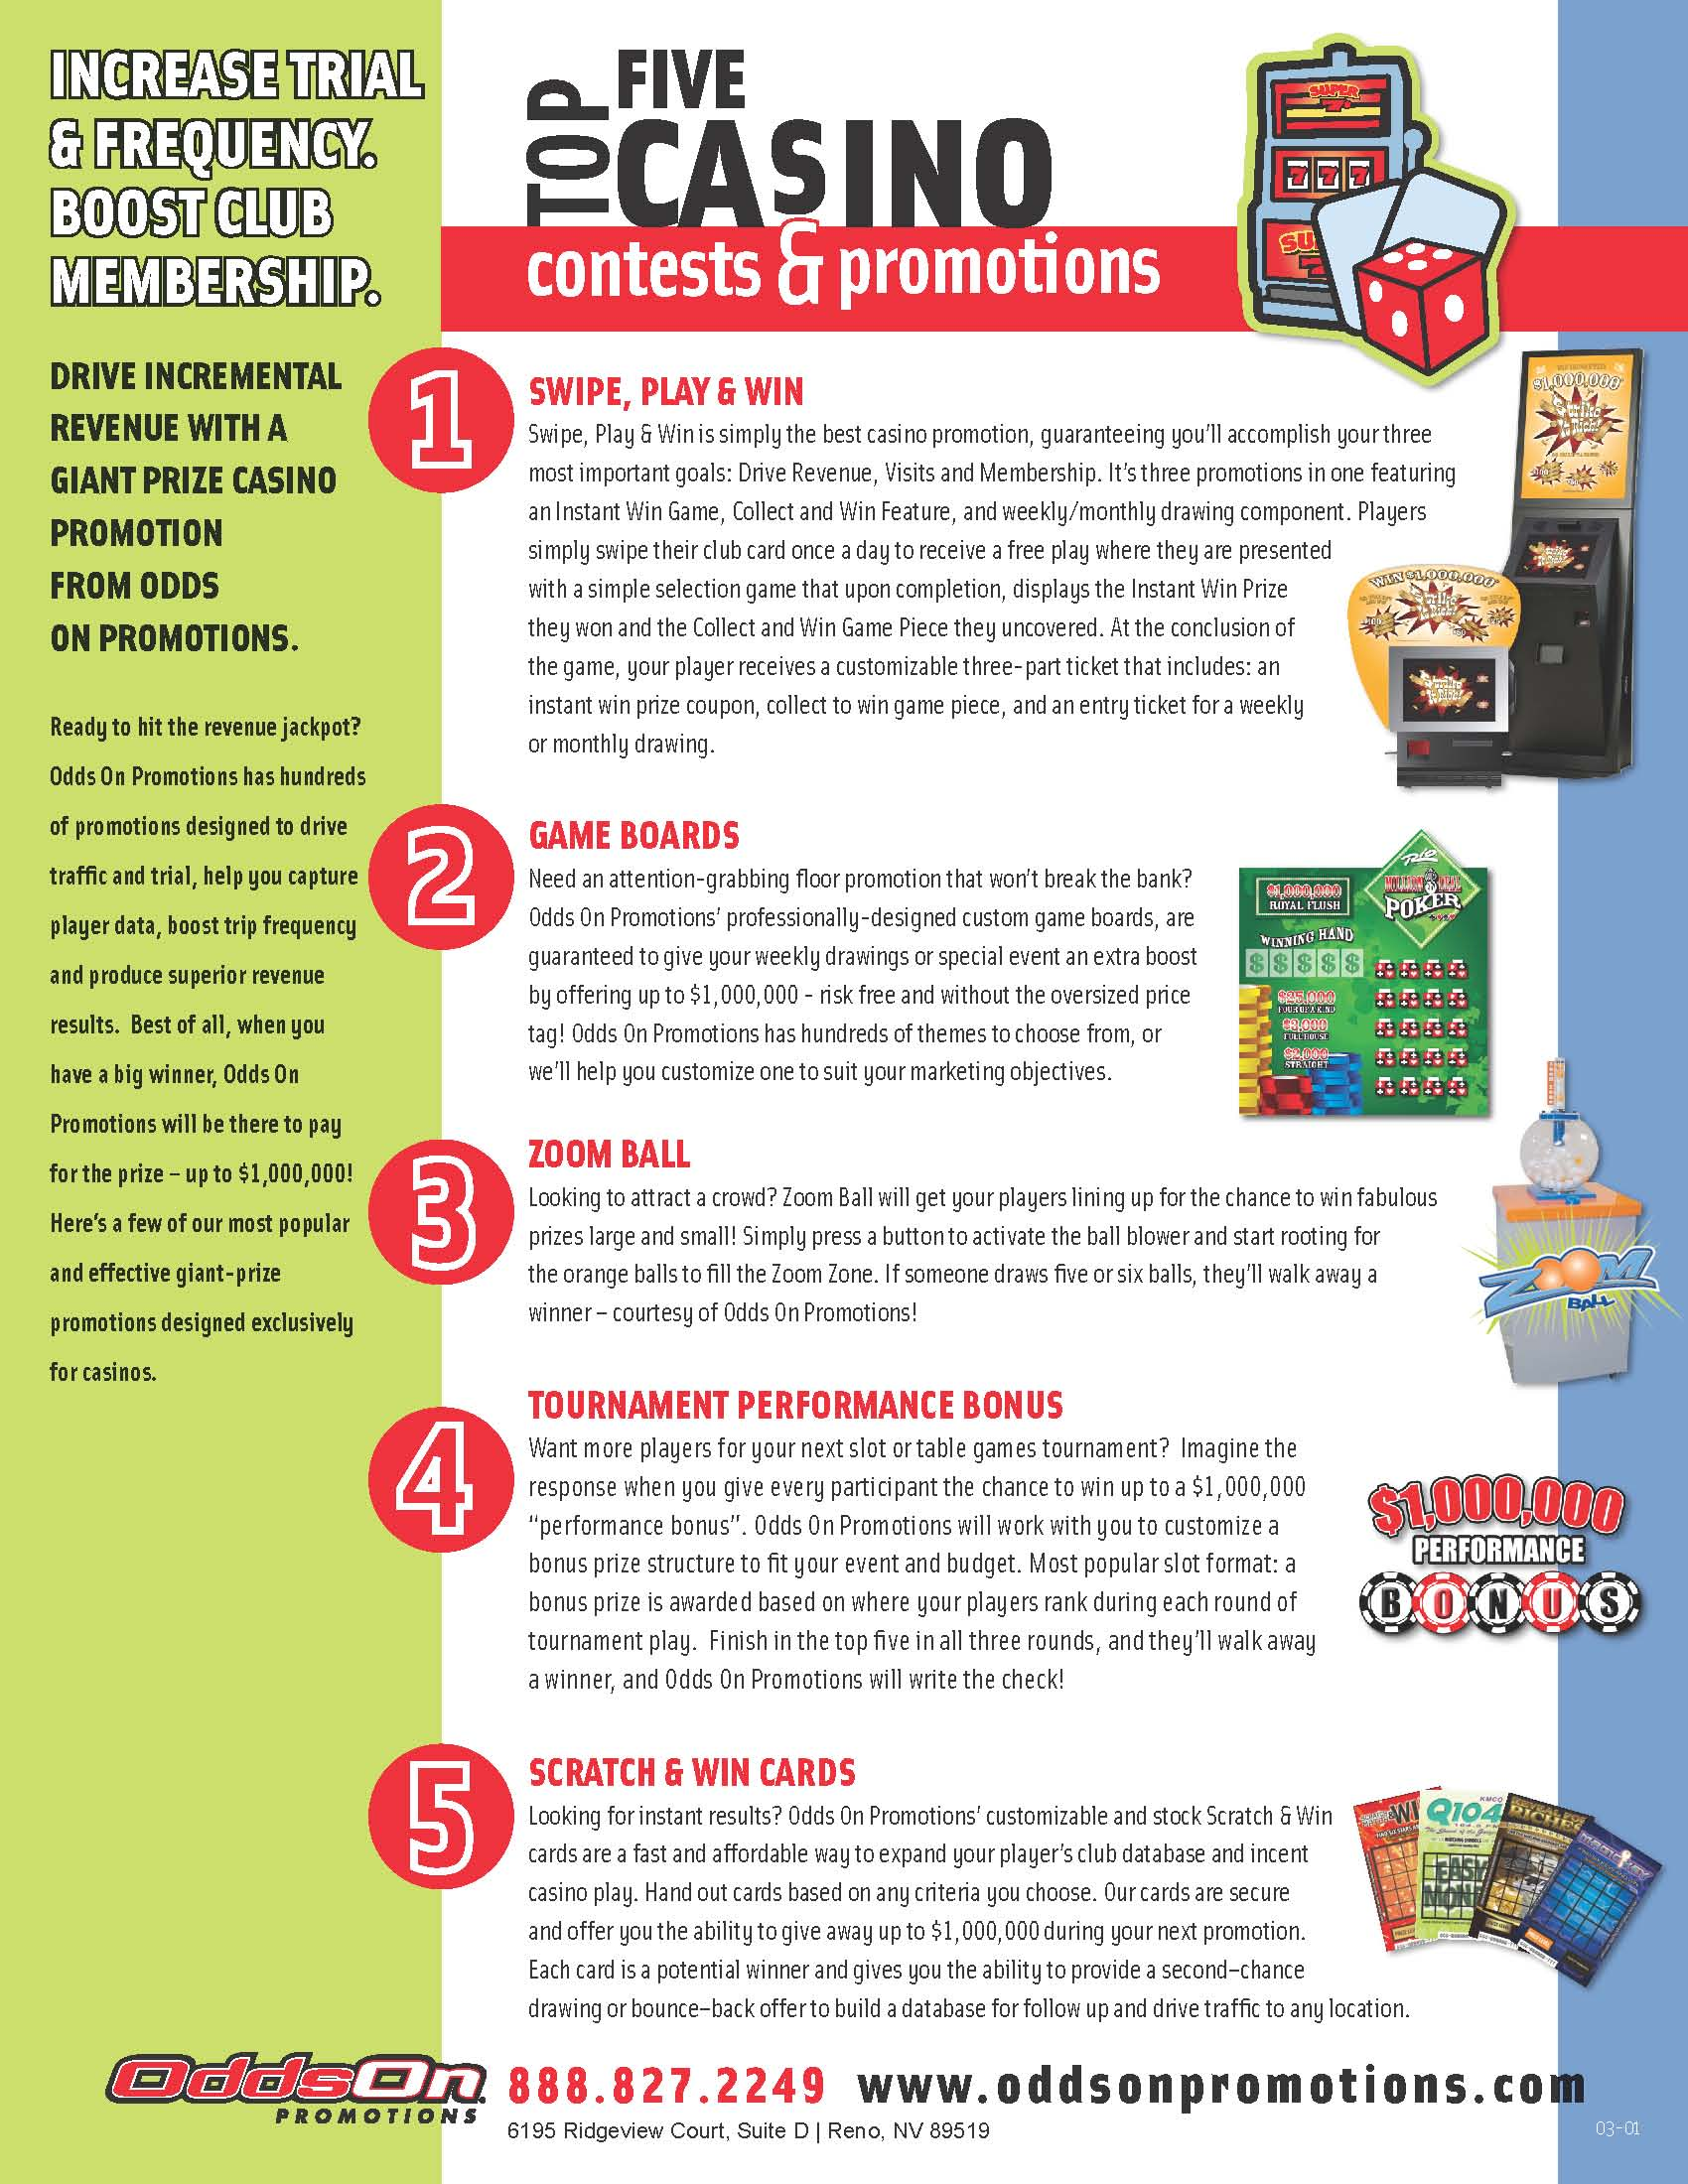 Poker machine promotions ideas